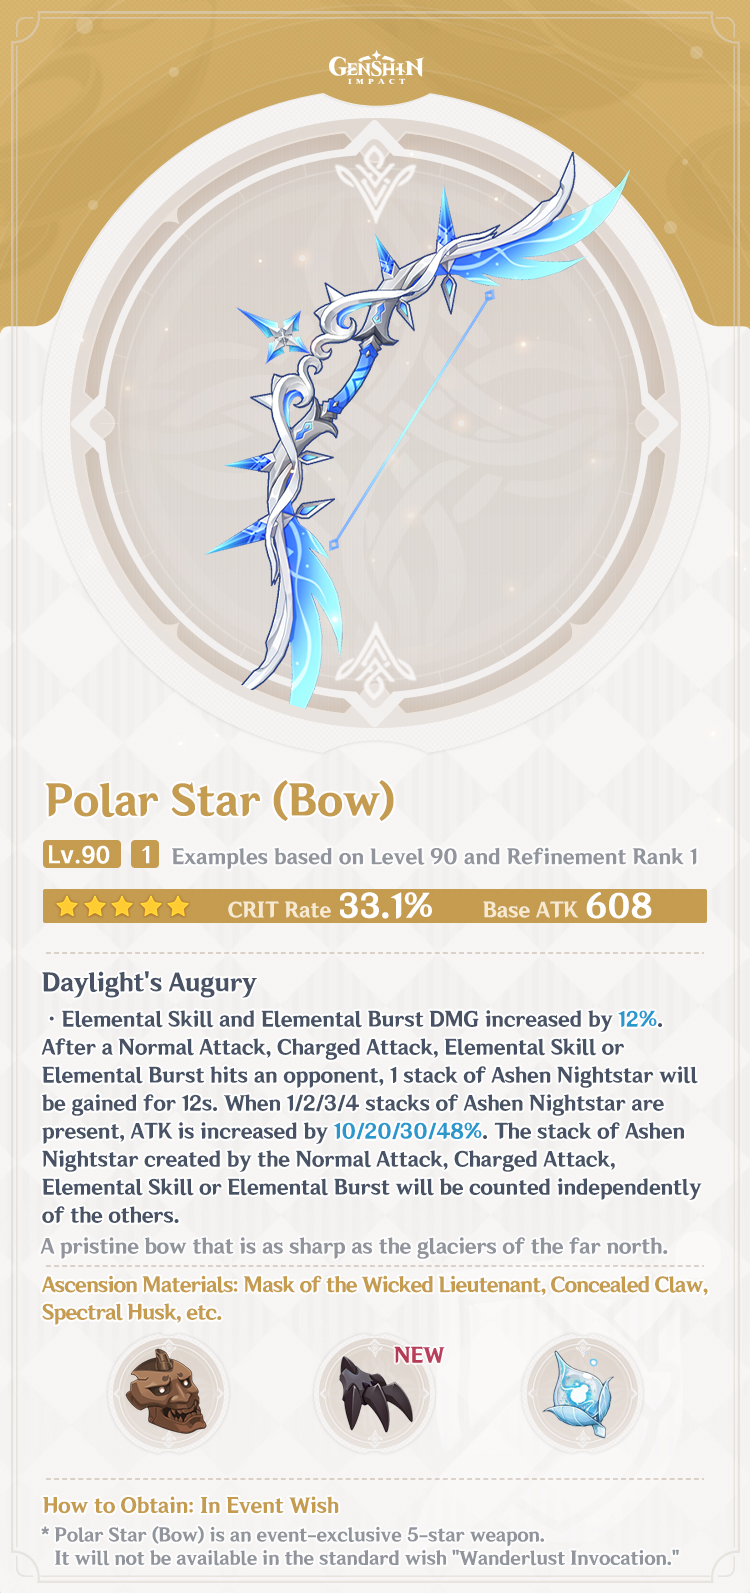 This is a graphic containing a picture of Polar Star, a bow. with a description of its stats and abilities below it, as well images of the Ascension Materials it requires.